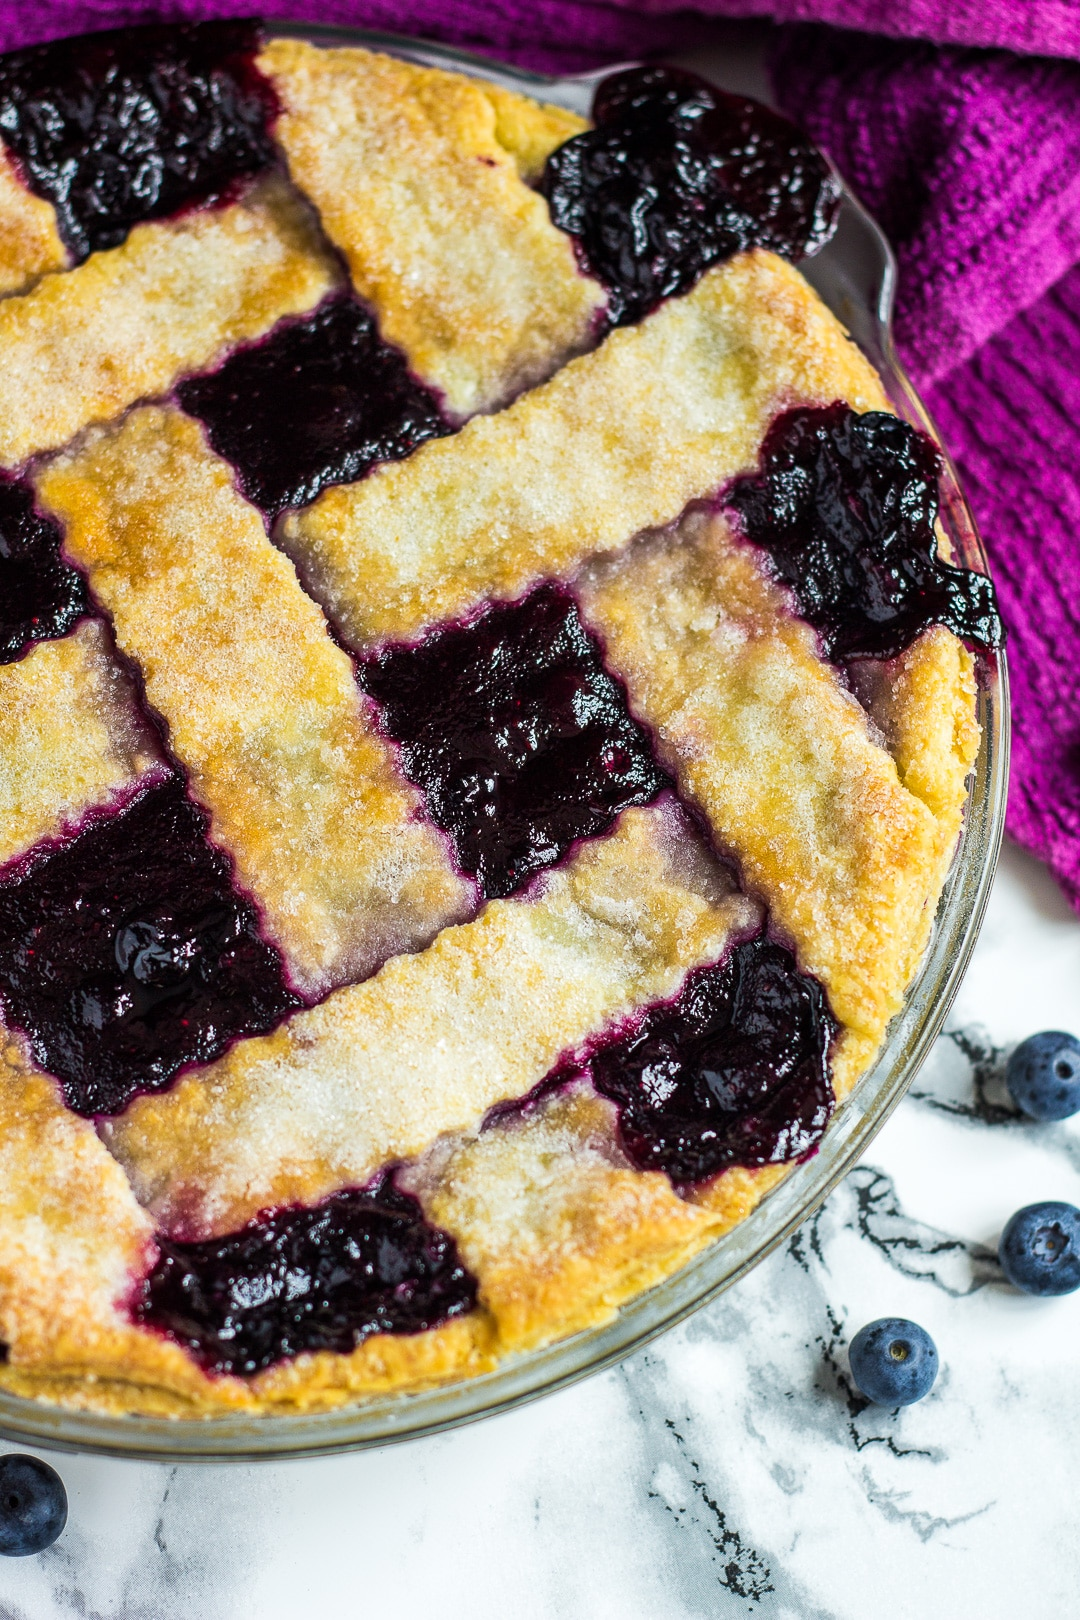 Overhead shot of a homemade blueberry pie in a glass pie dish.